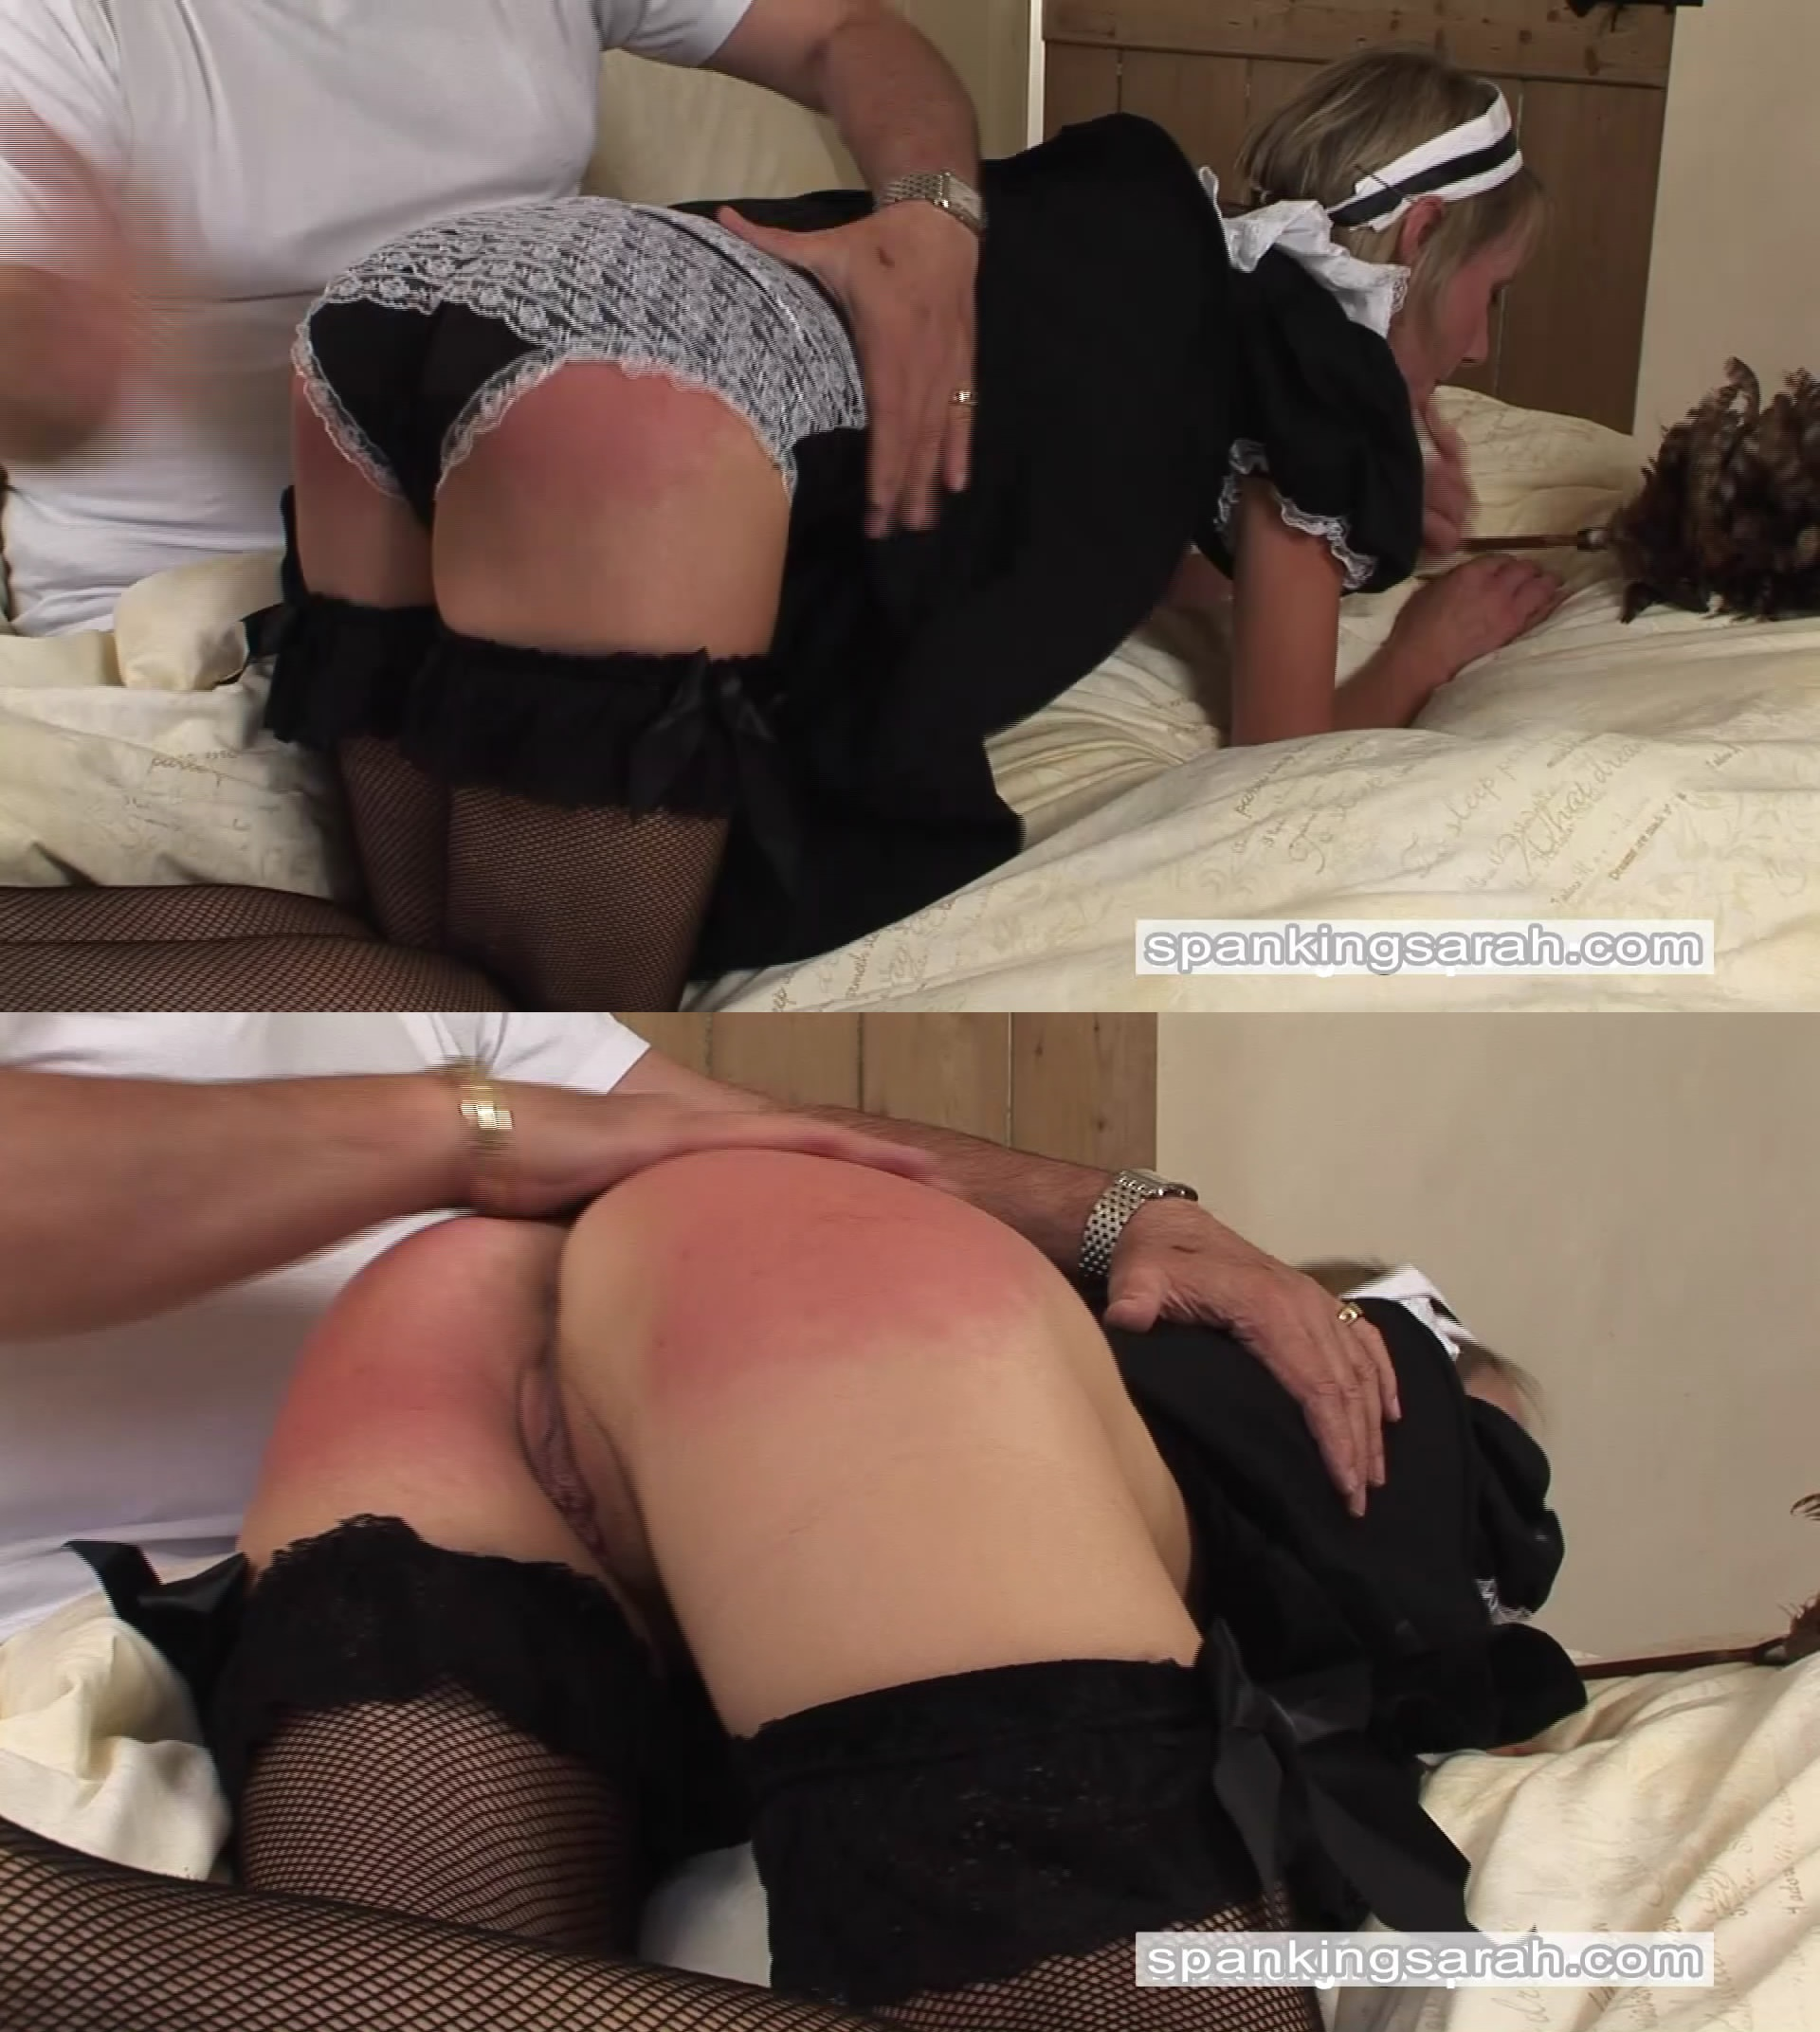 Spanking Sarah – MP4/Full HD – Tiffany – Maid for a spanking